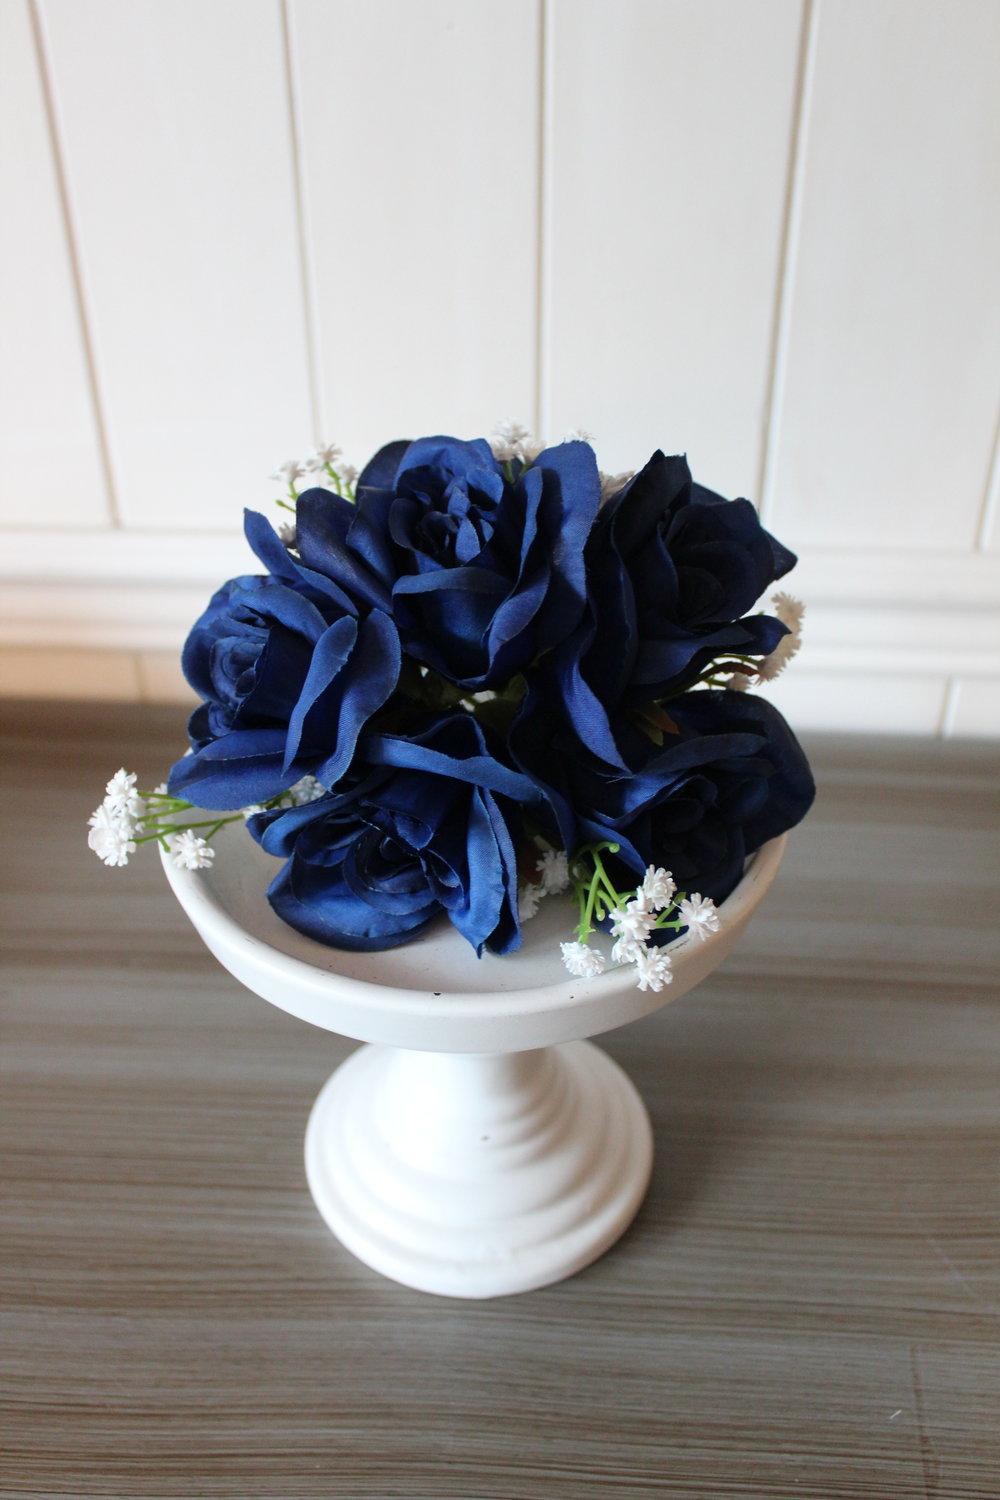 Cake topper: blue roses, baby's breath